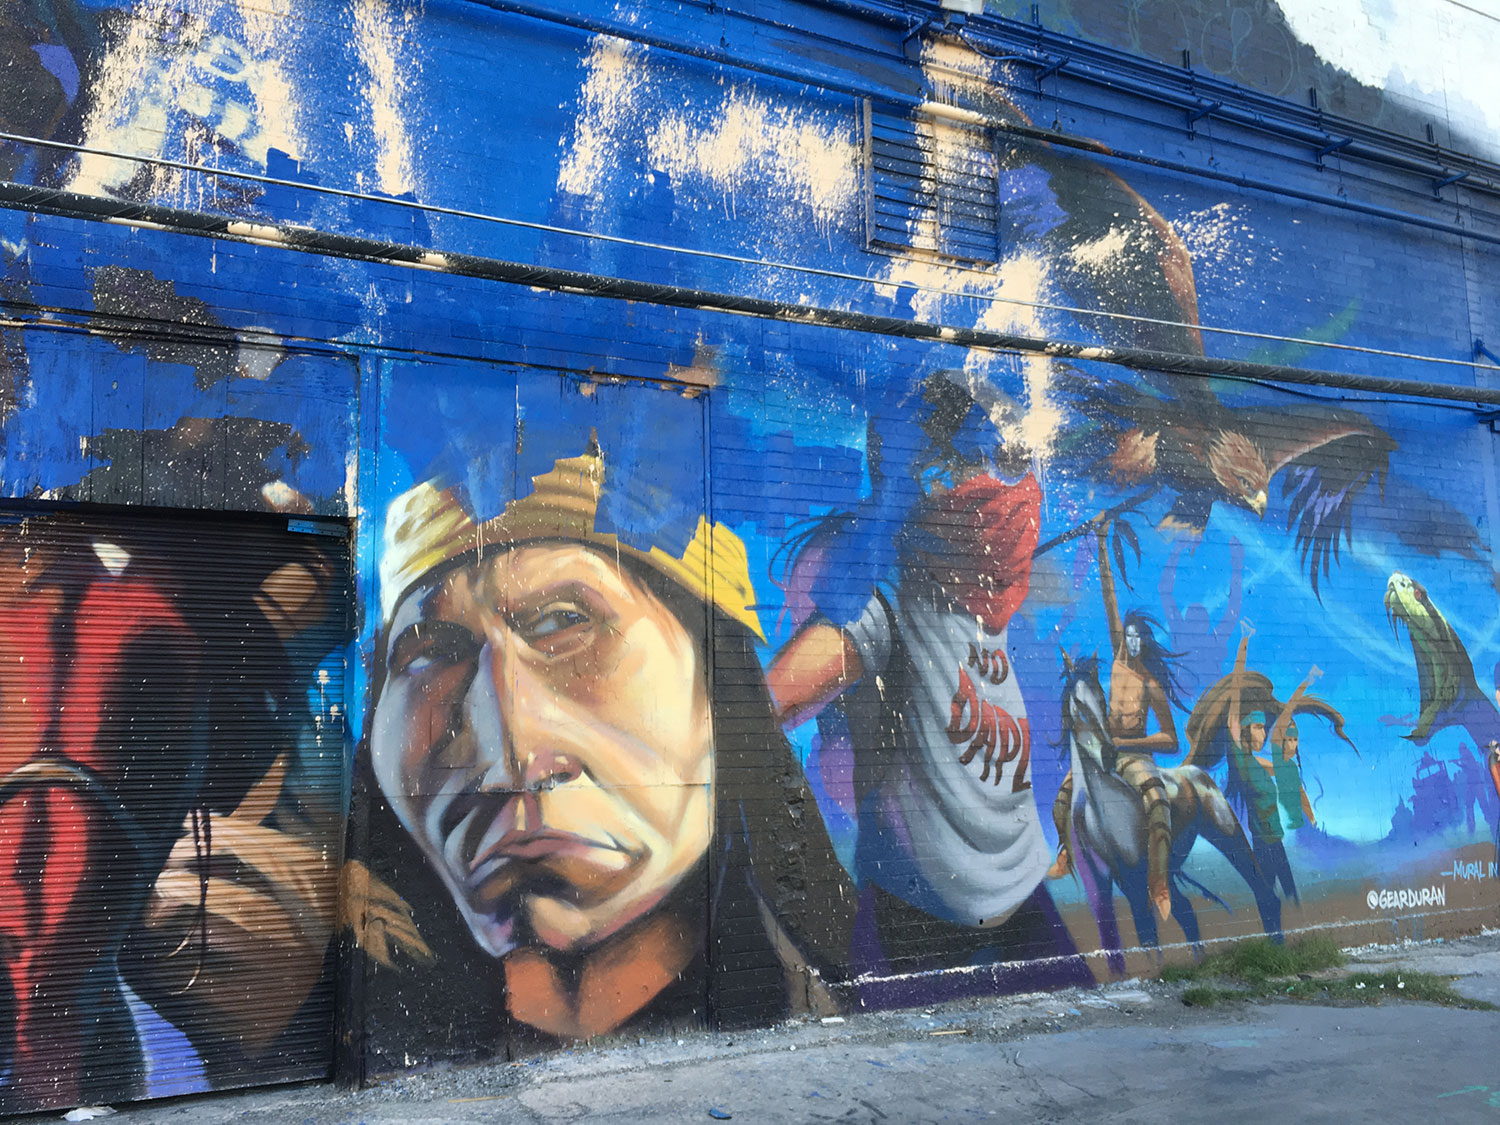 Mural art on main street in Las Vegas